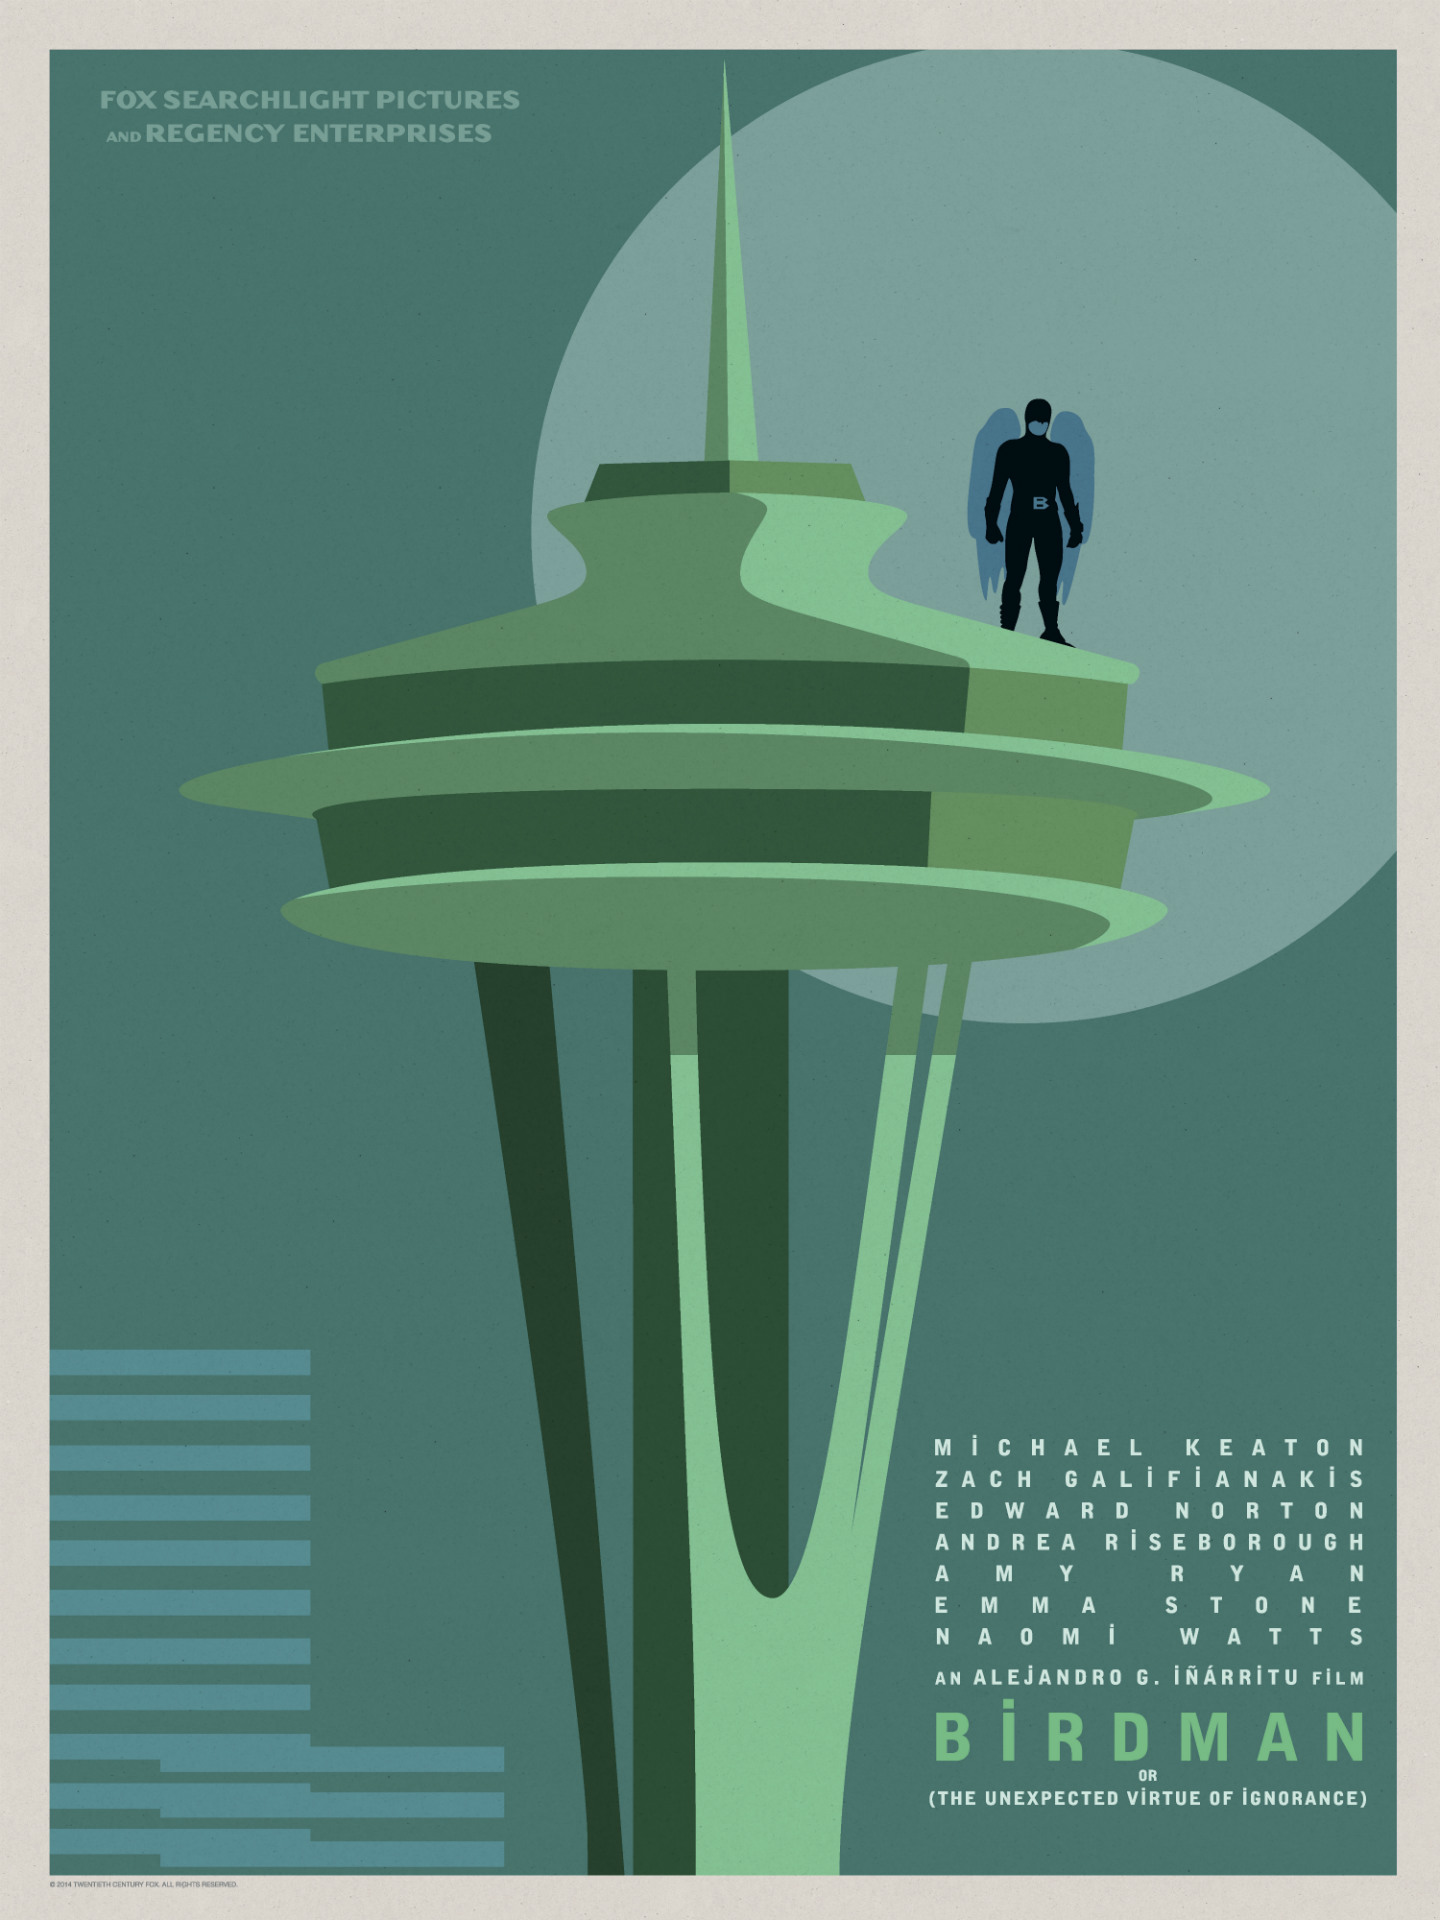 Birdman-Official Poster Minimalist XLG-13OUTUBRO2014-07